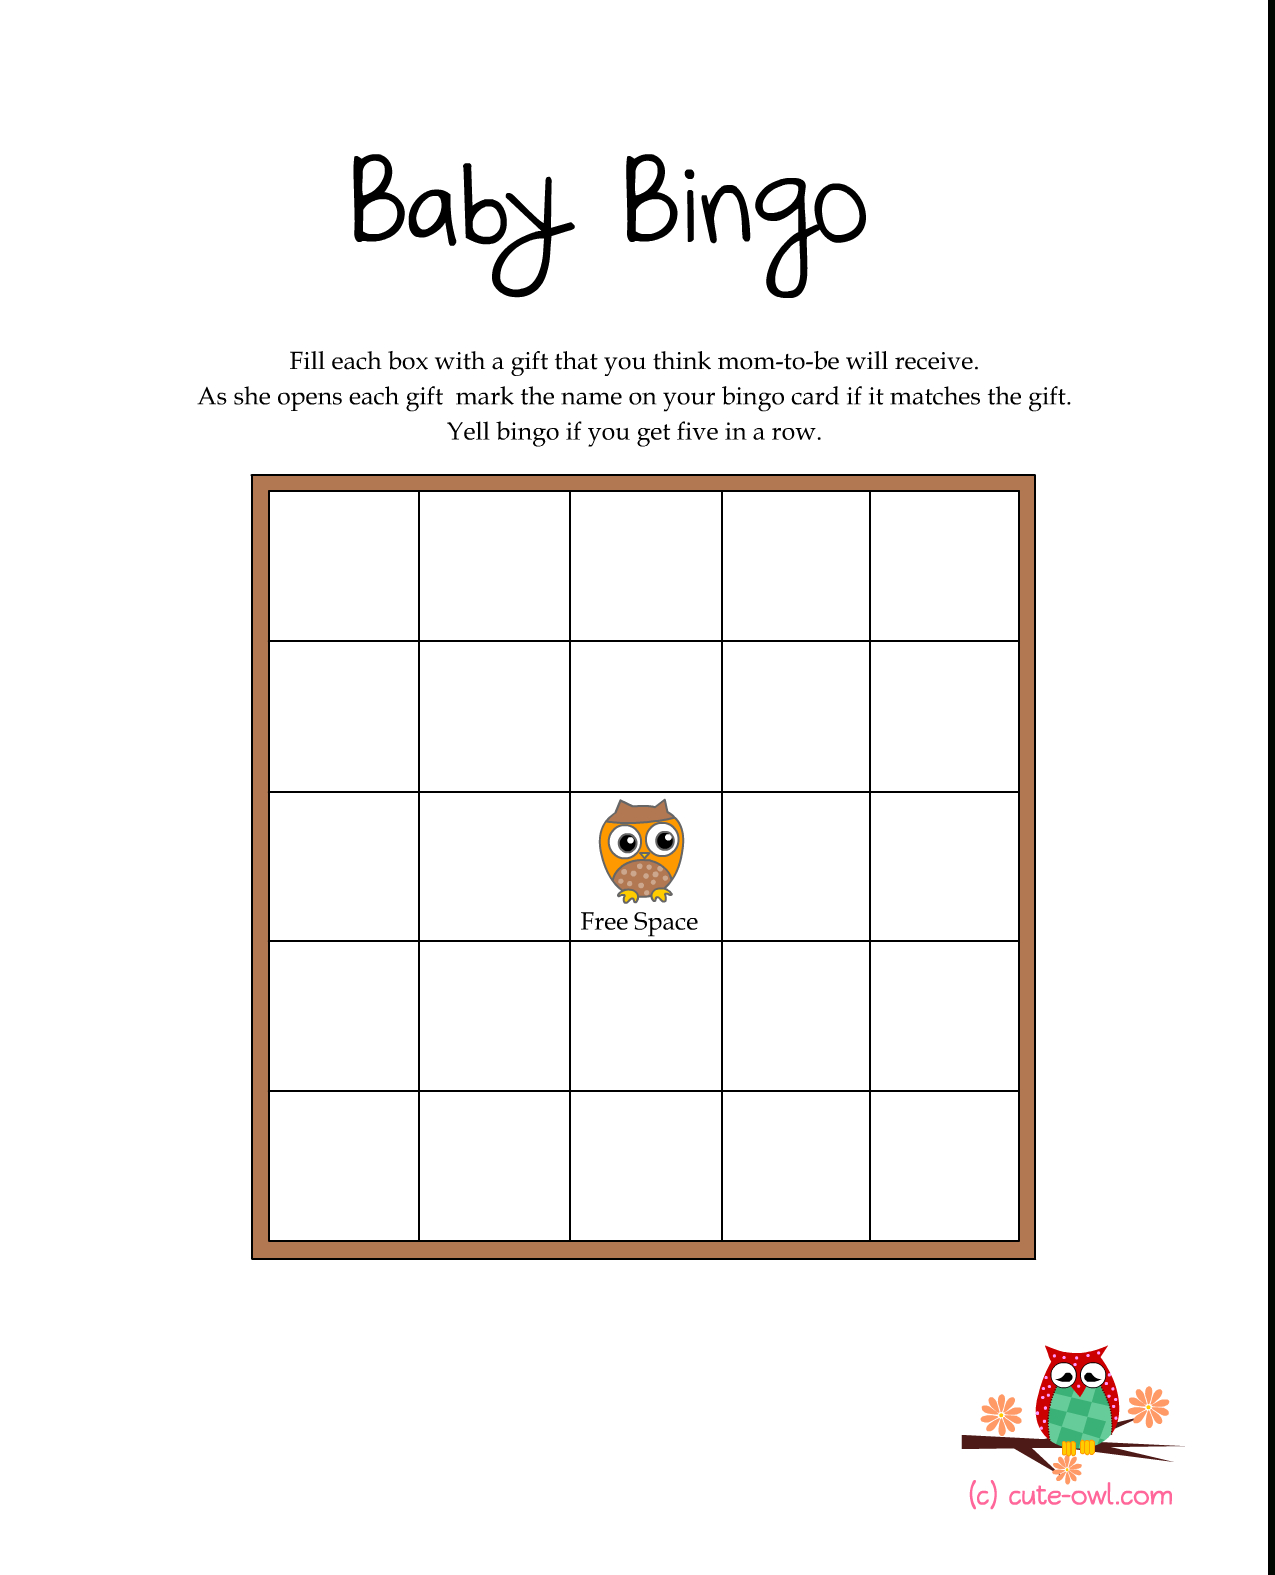 Free Printable Owl Themed Baby Shower Games   Woodland Animal Themed - Printable Baby Shower Bingo Games Free